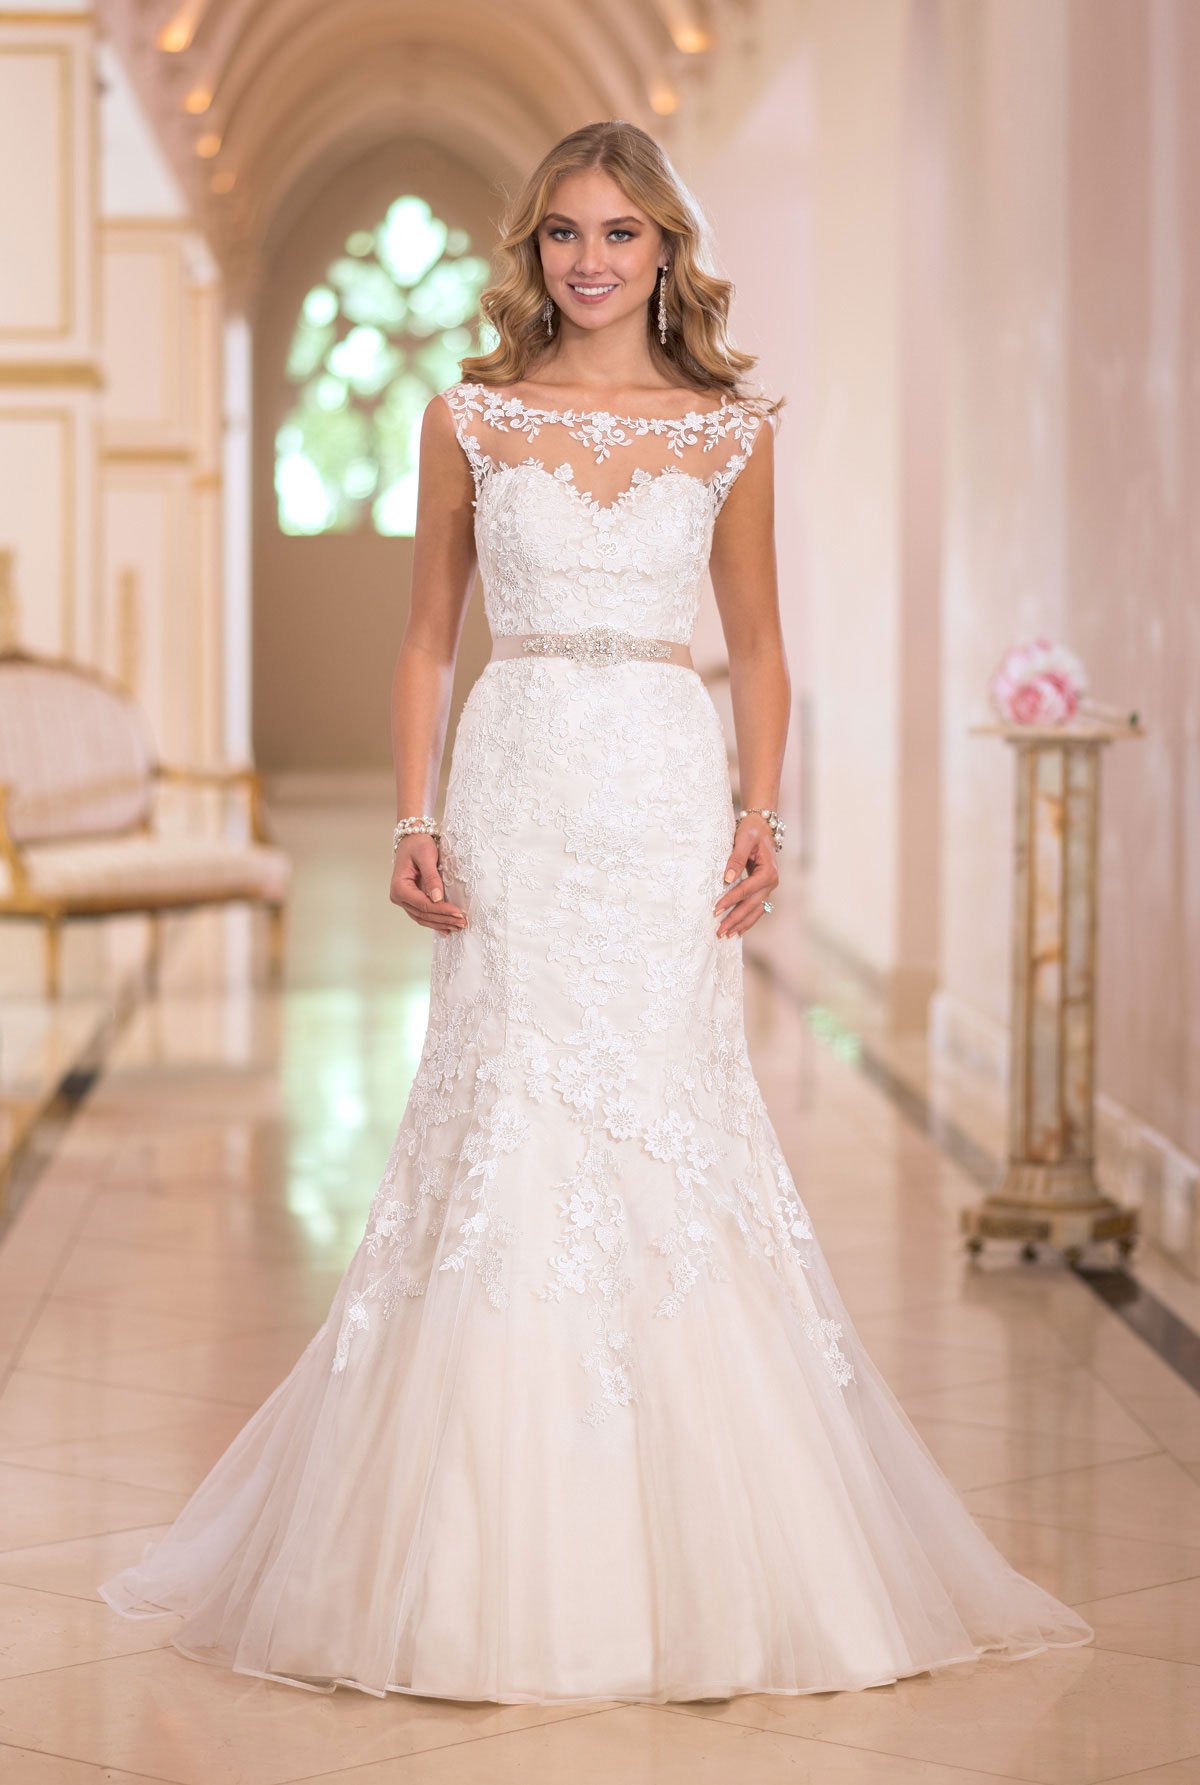 dresses flowergirls desses and more at bliss bridal salon fort worth